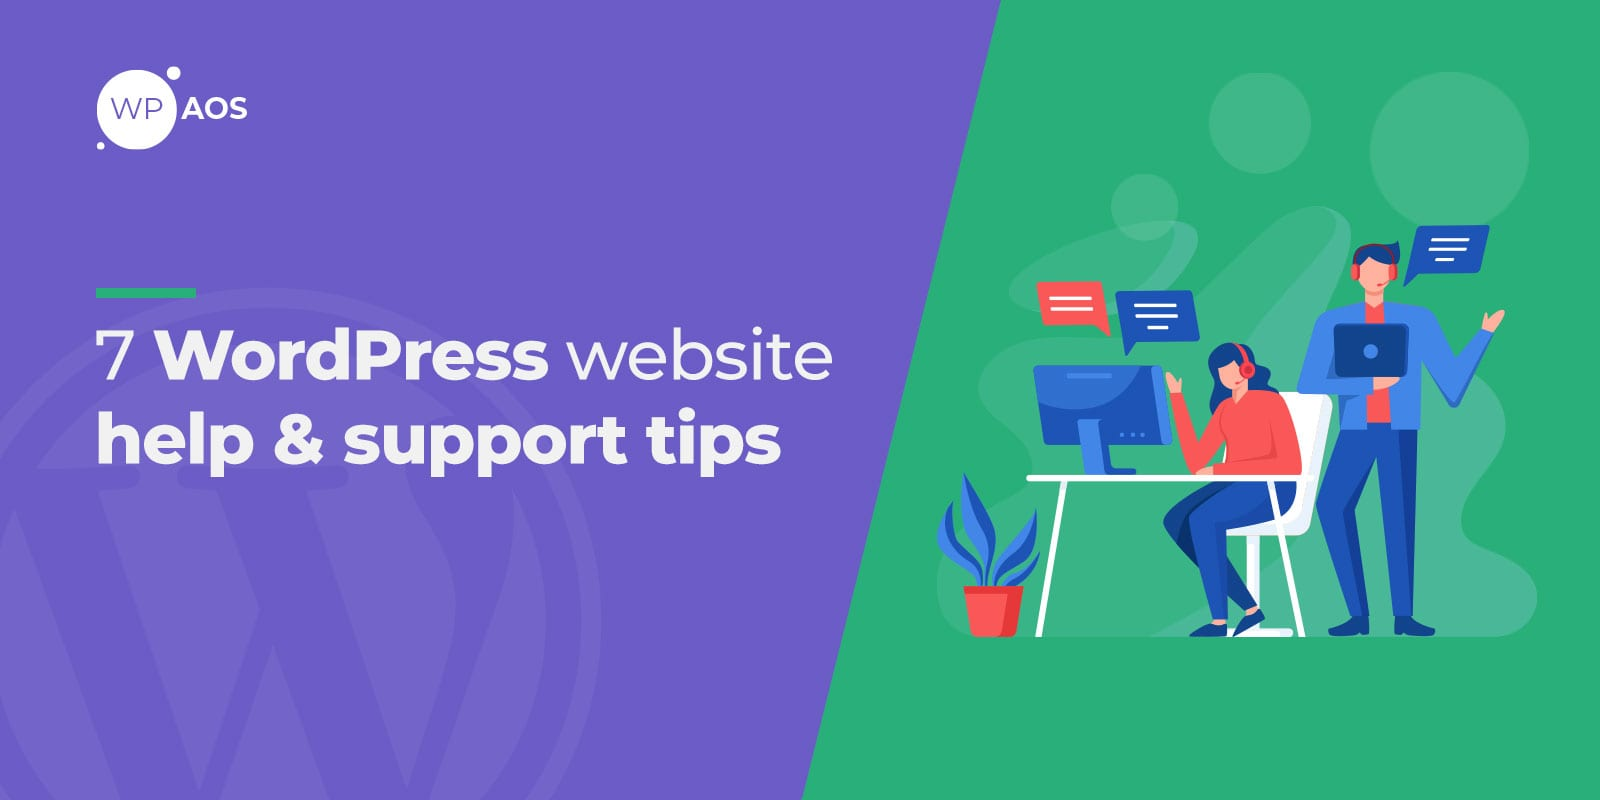 WordPress Help, Support Tips, wpaos